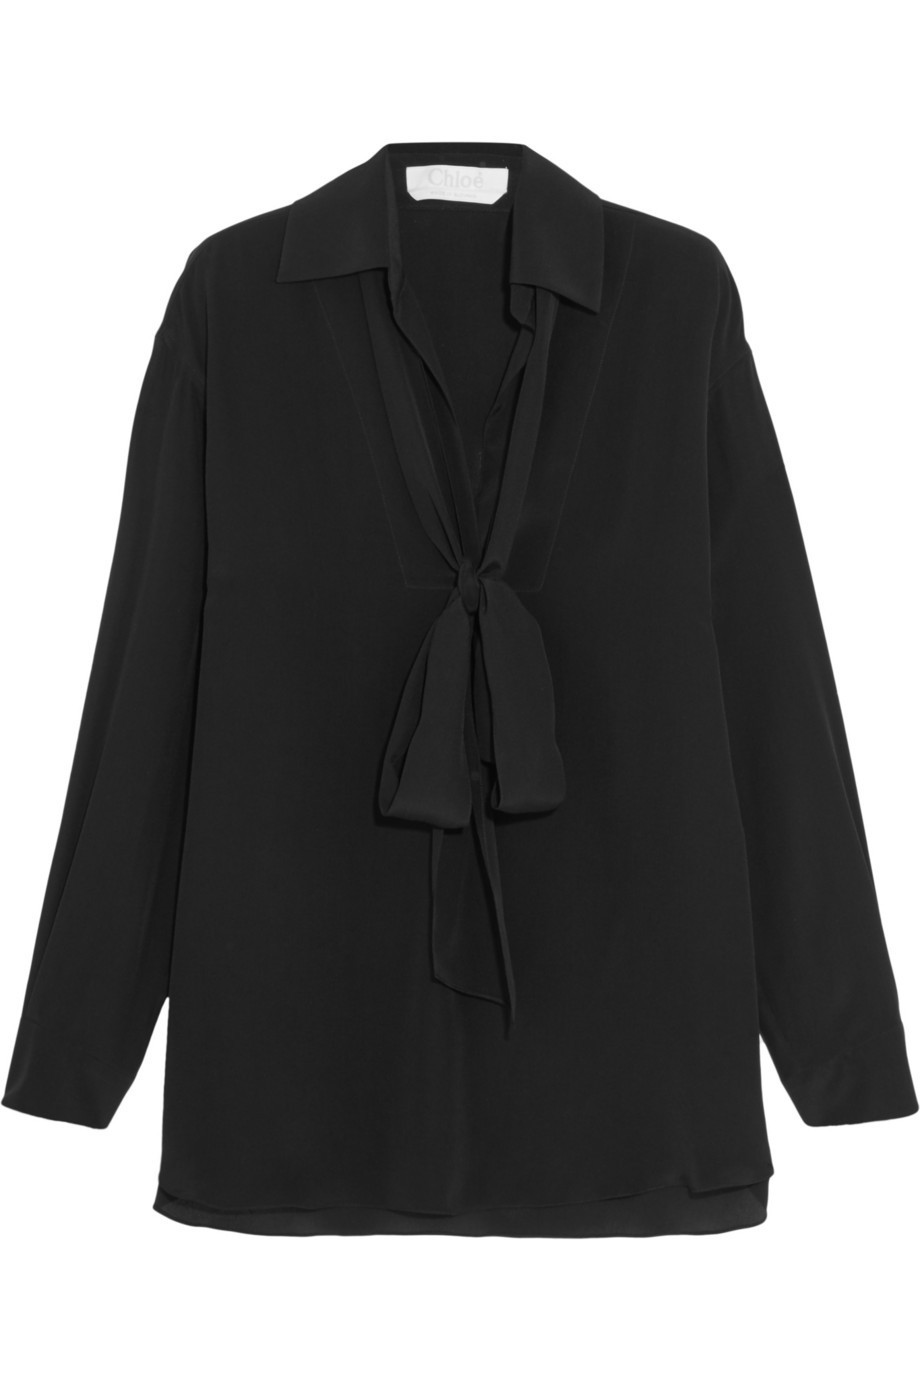 Chloé Chloé Pussy-Bow Silk-Cady Blouse in black